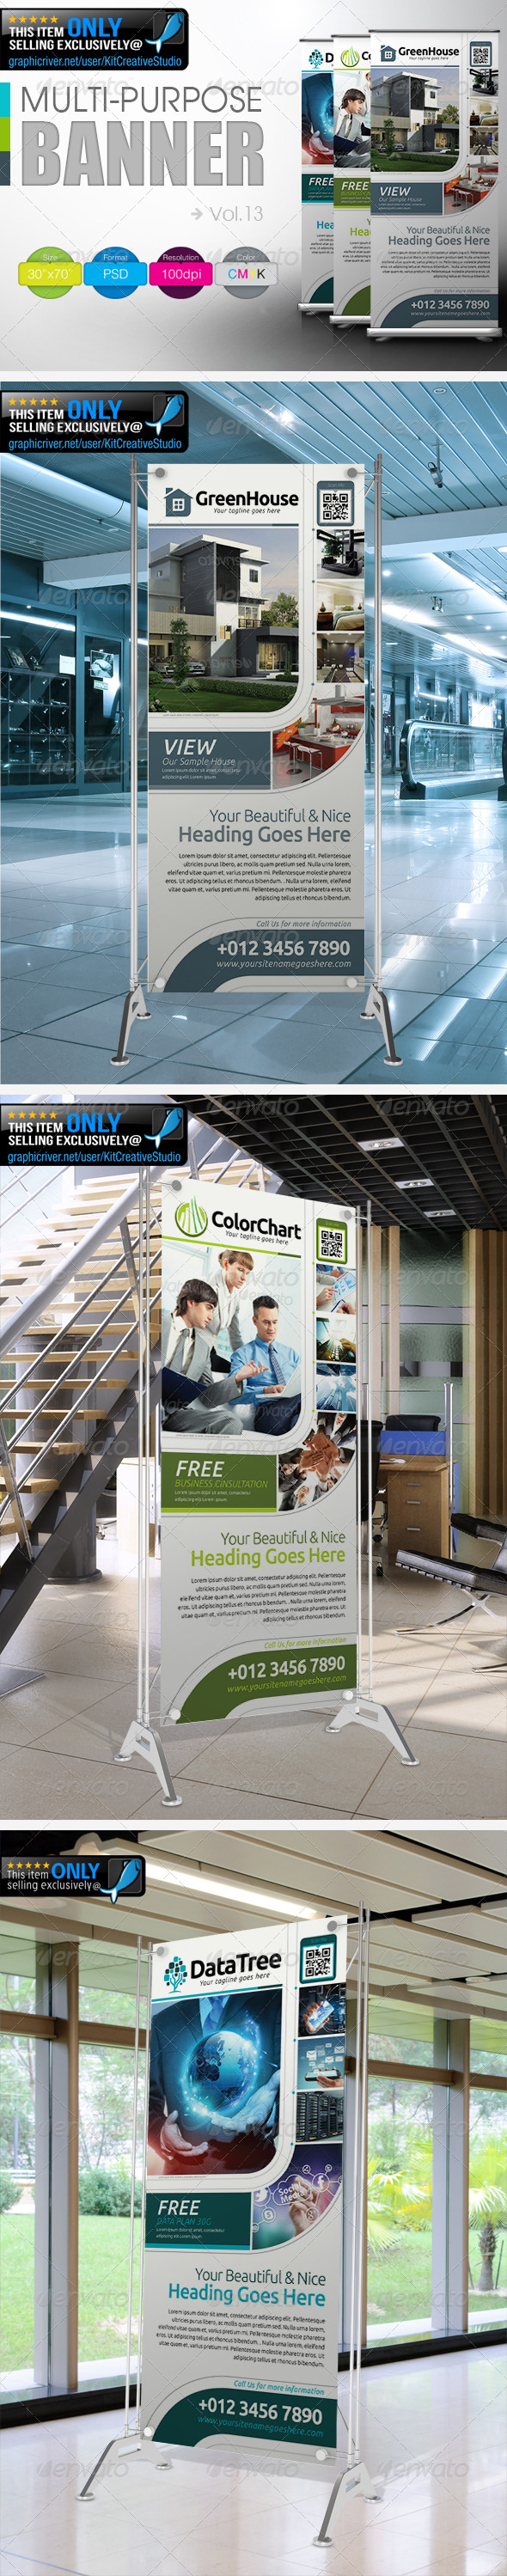 Multipurpose Banner Vol.13 - Signage Print Templates